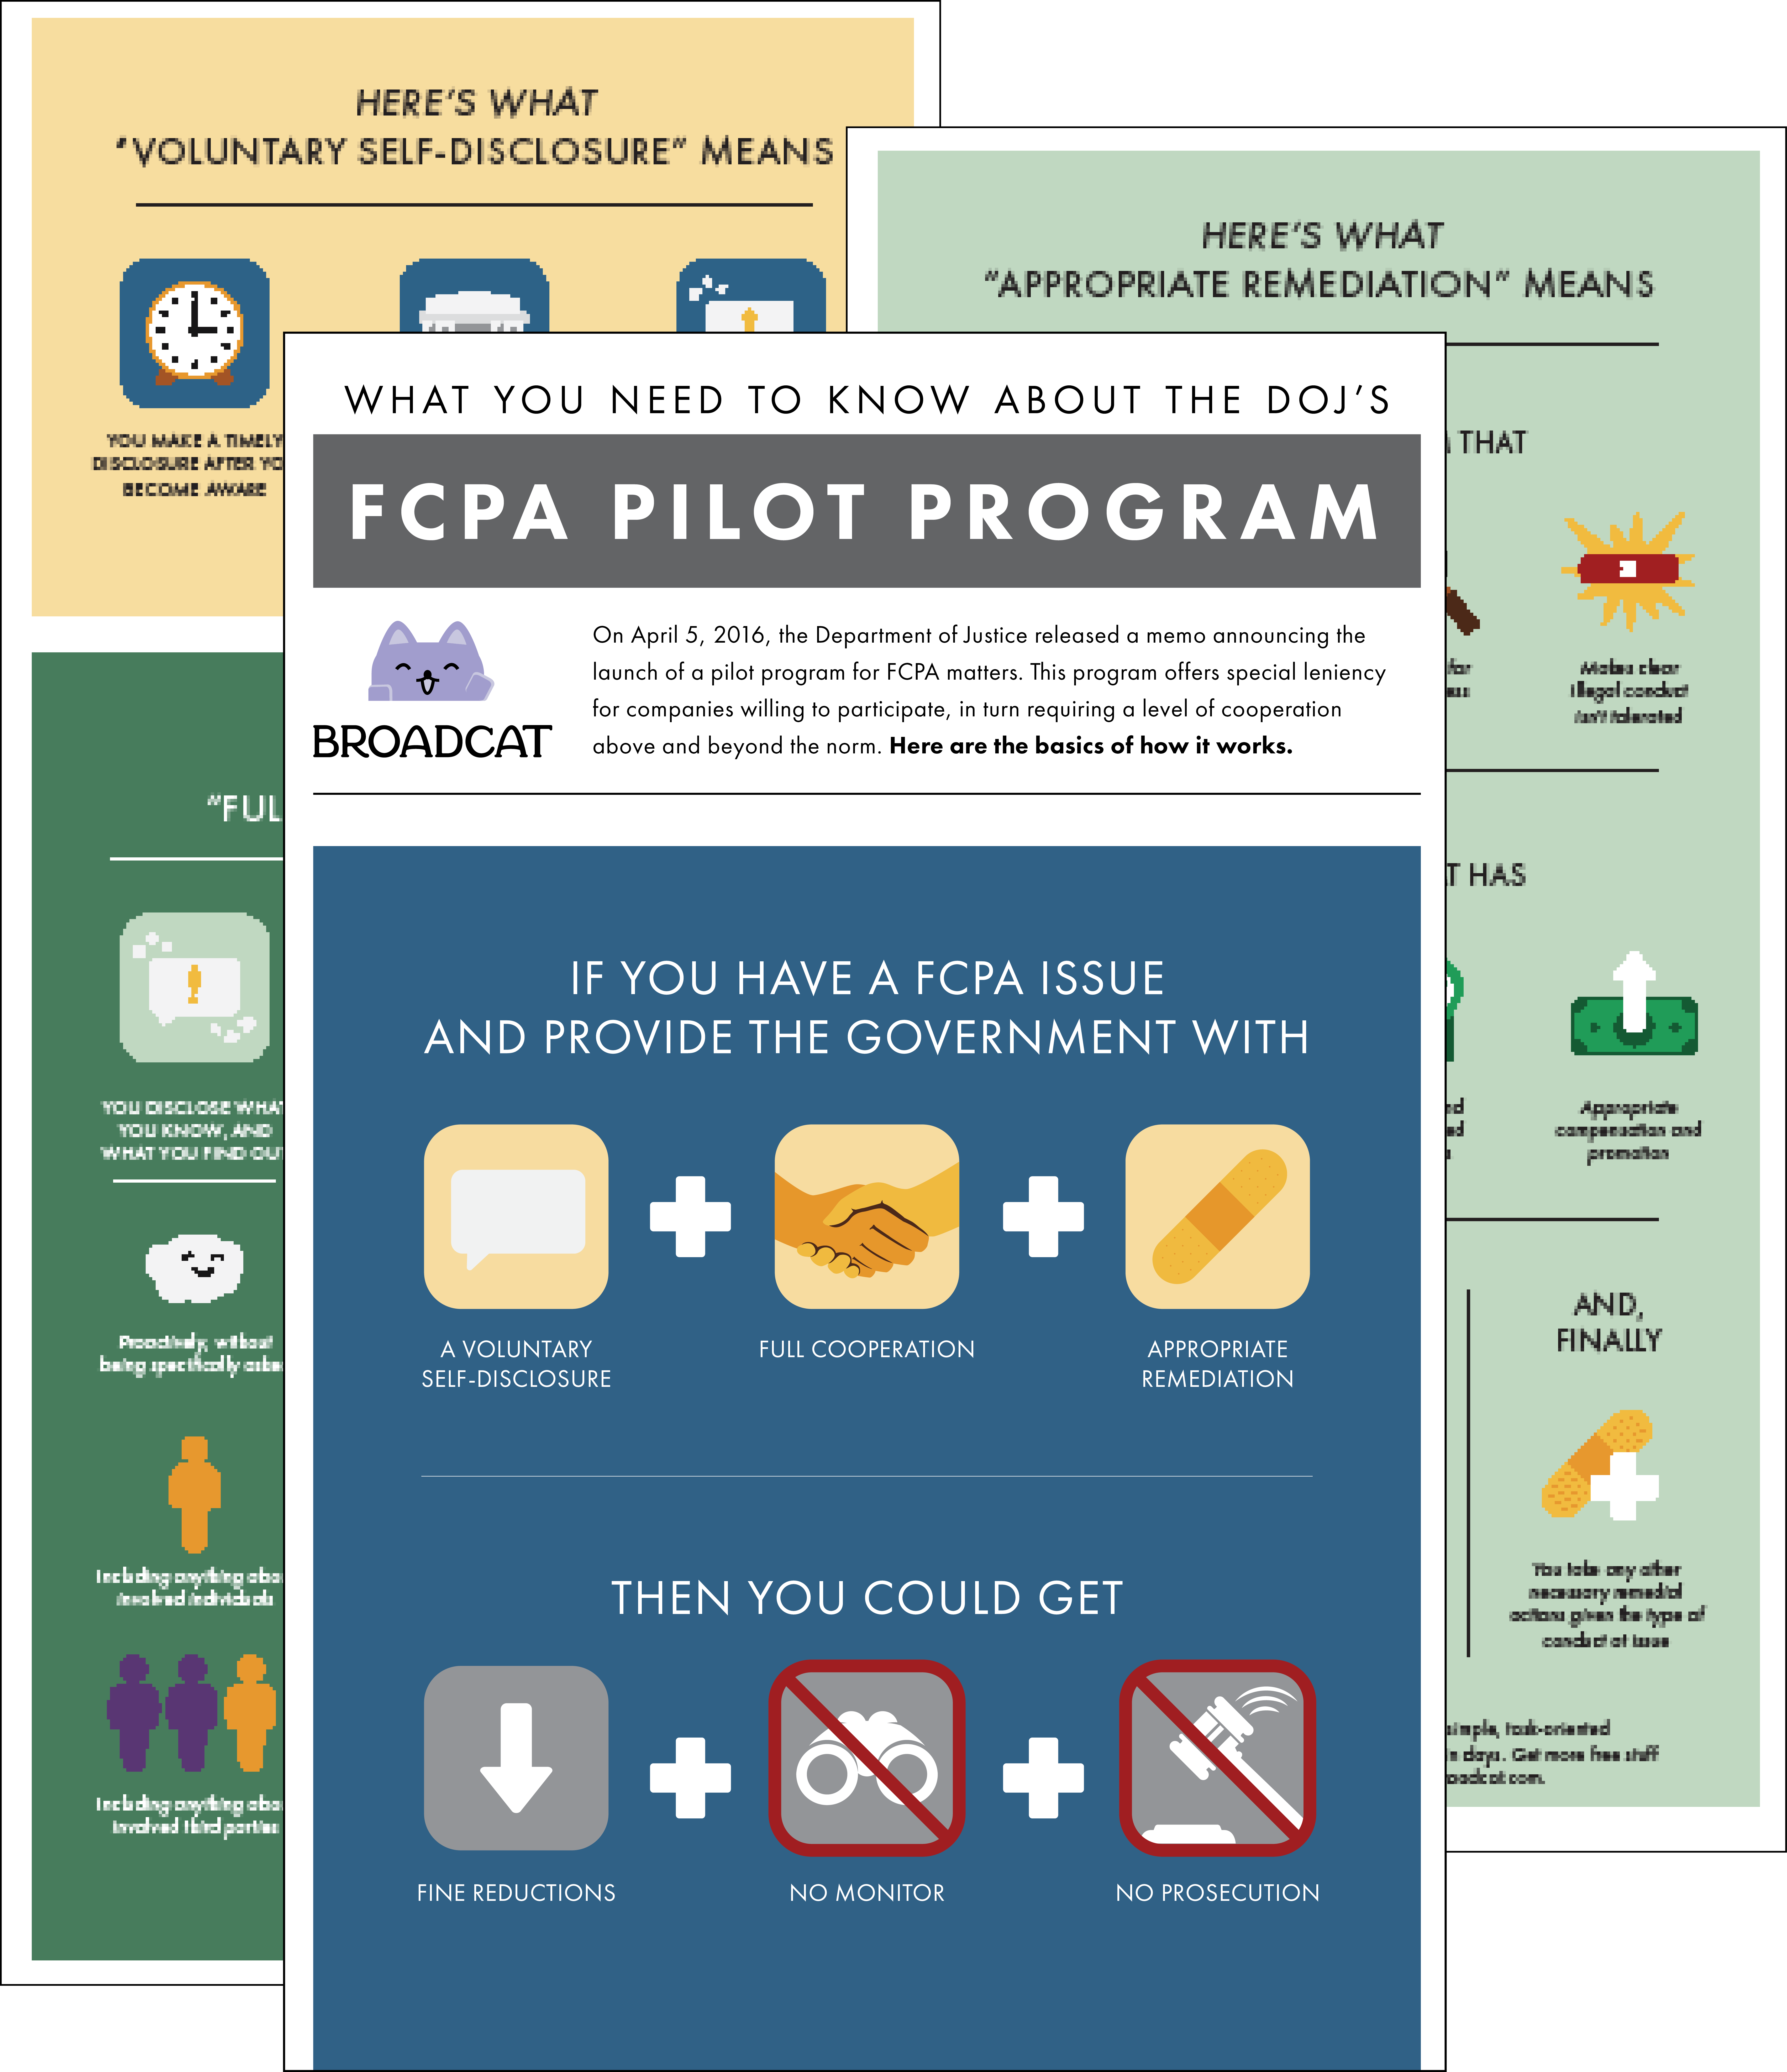 Preview of the FCPA Pilot Program, as clarified by Broadcat. Download it now, for free!